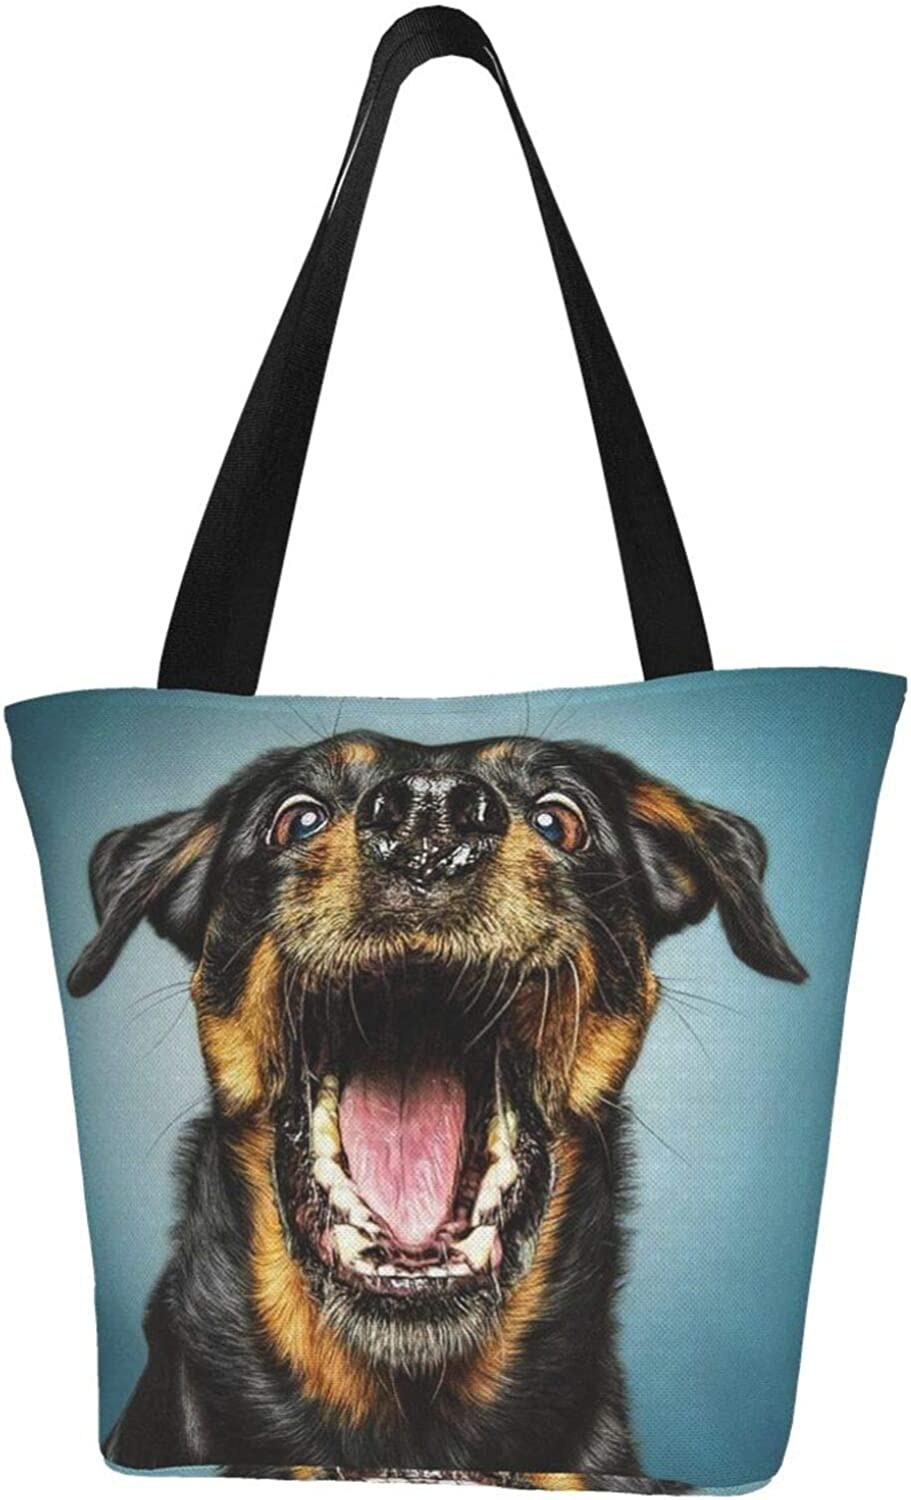 Funny Theme Rottweile Happy Face Themed Printed Women Canvas Handbag Zipper Shoulder Bag Work Booksbag Tote Purse Leisure Hobo Bag For Shopping